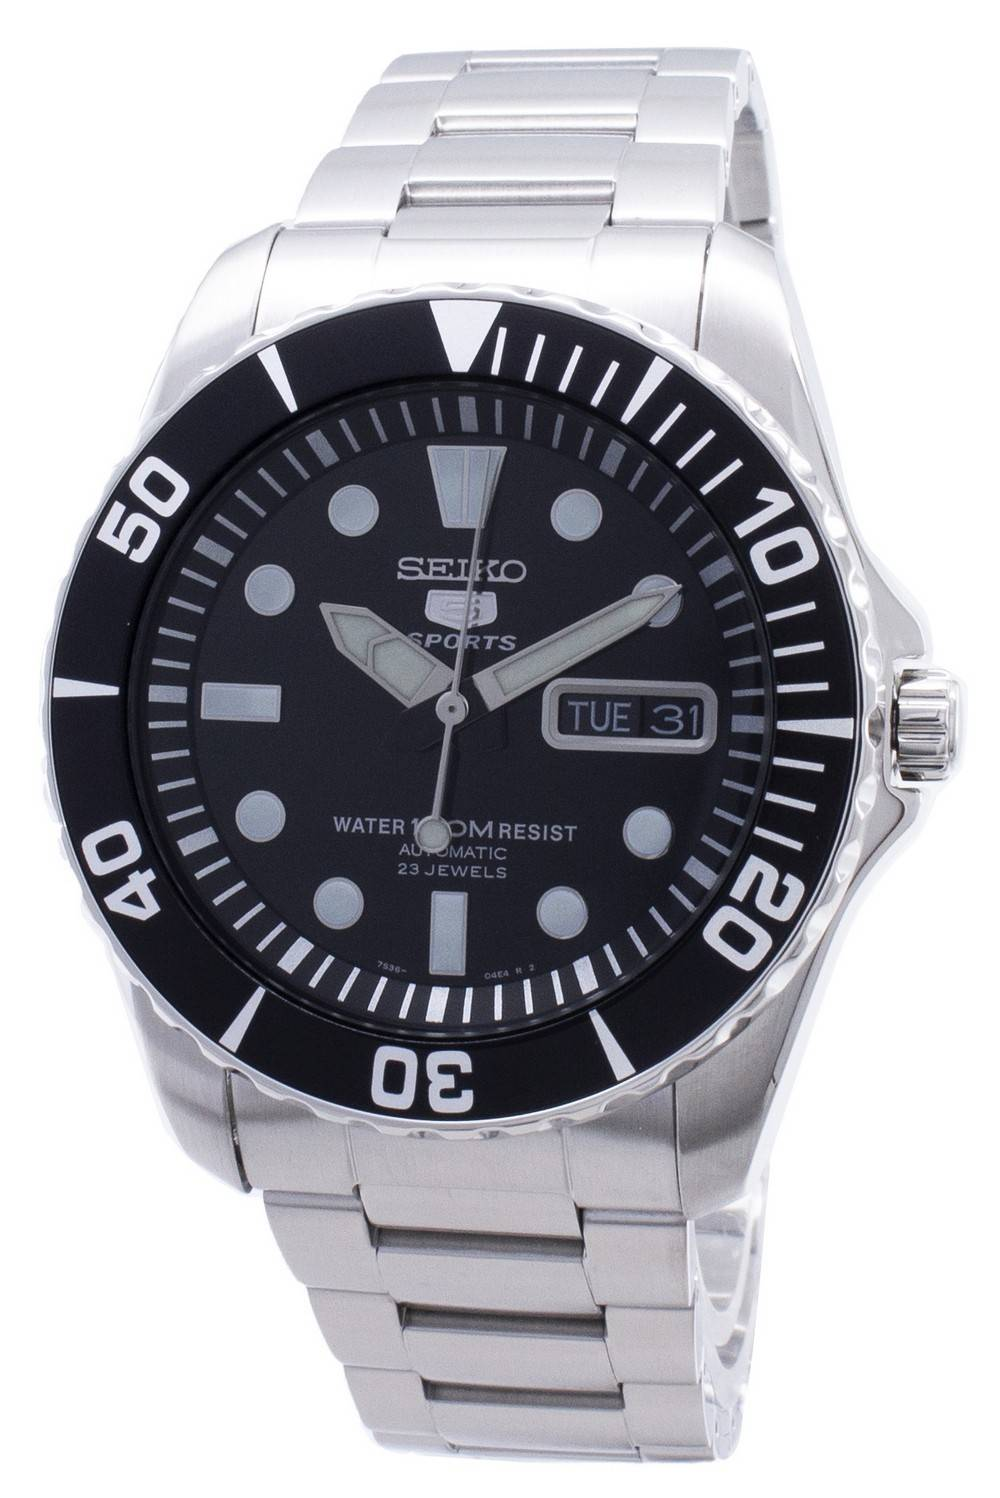 diver baselworld prospex price watches hi seiko re beat specs creation